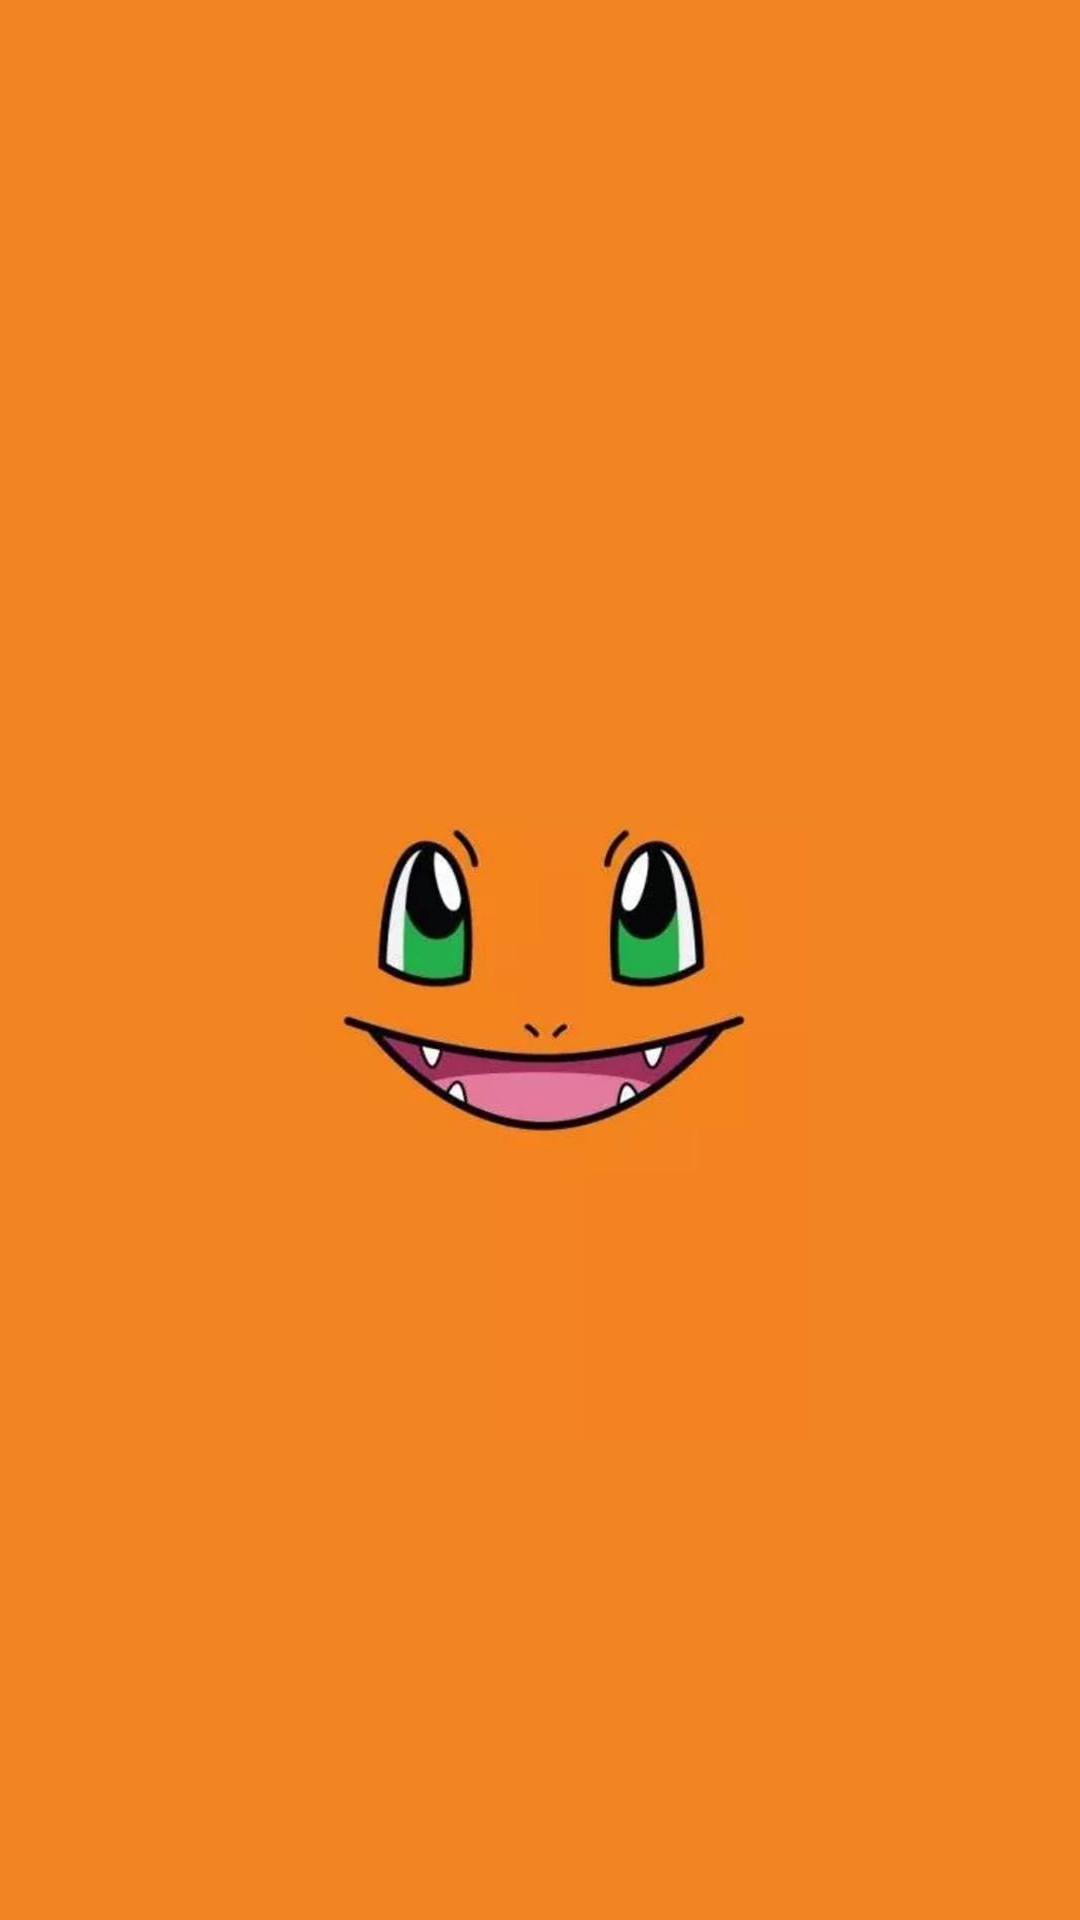 Charmander Pokemon Android wallpaper - Android HD wallpapers